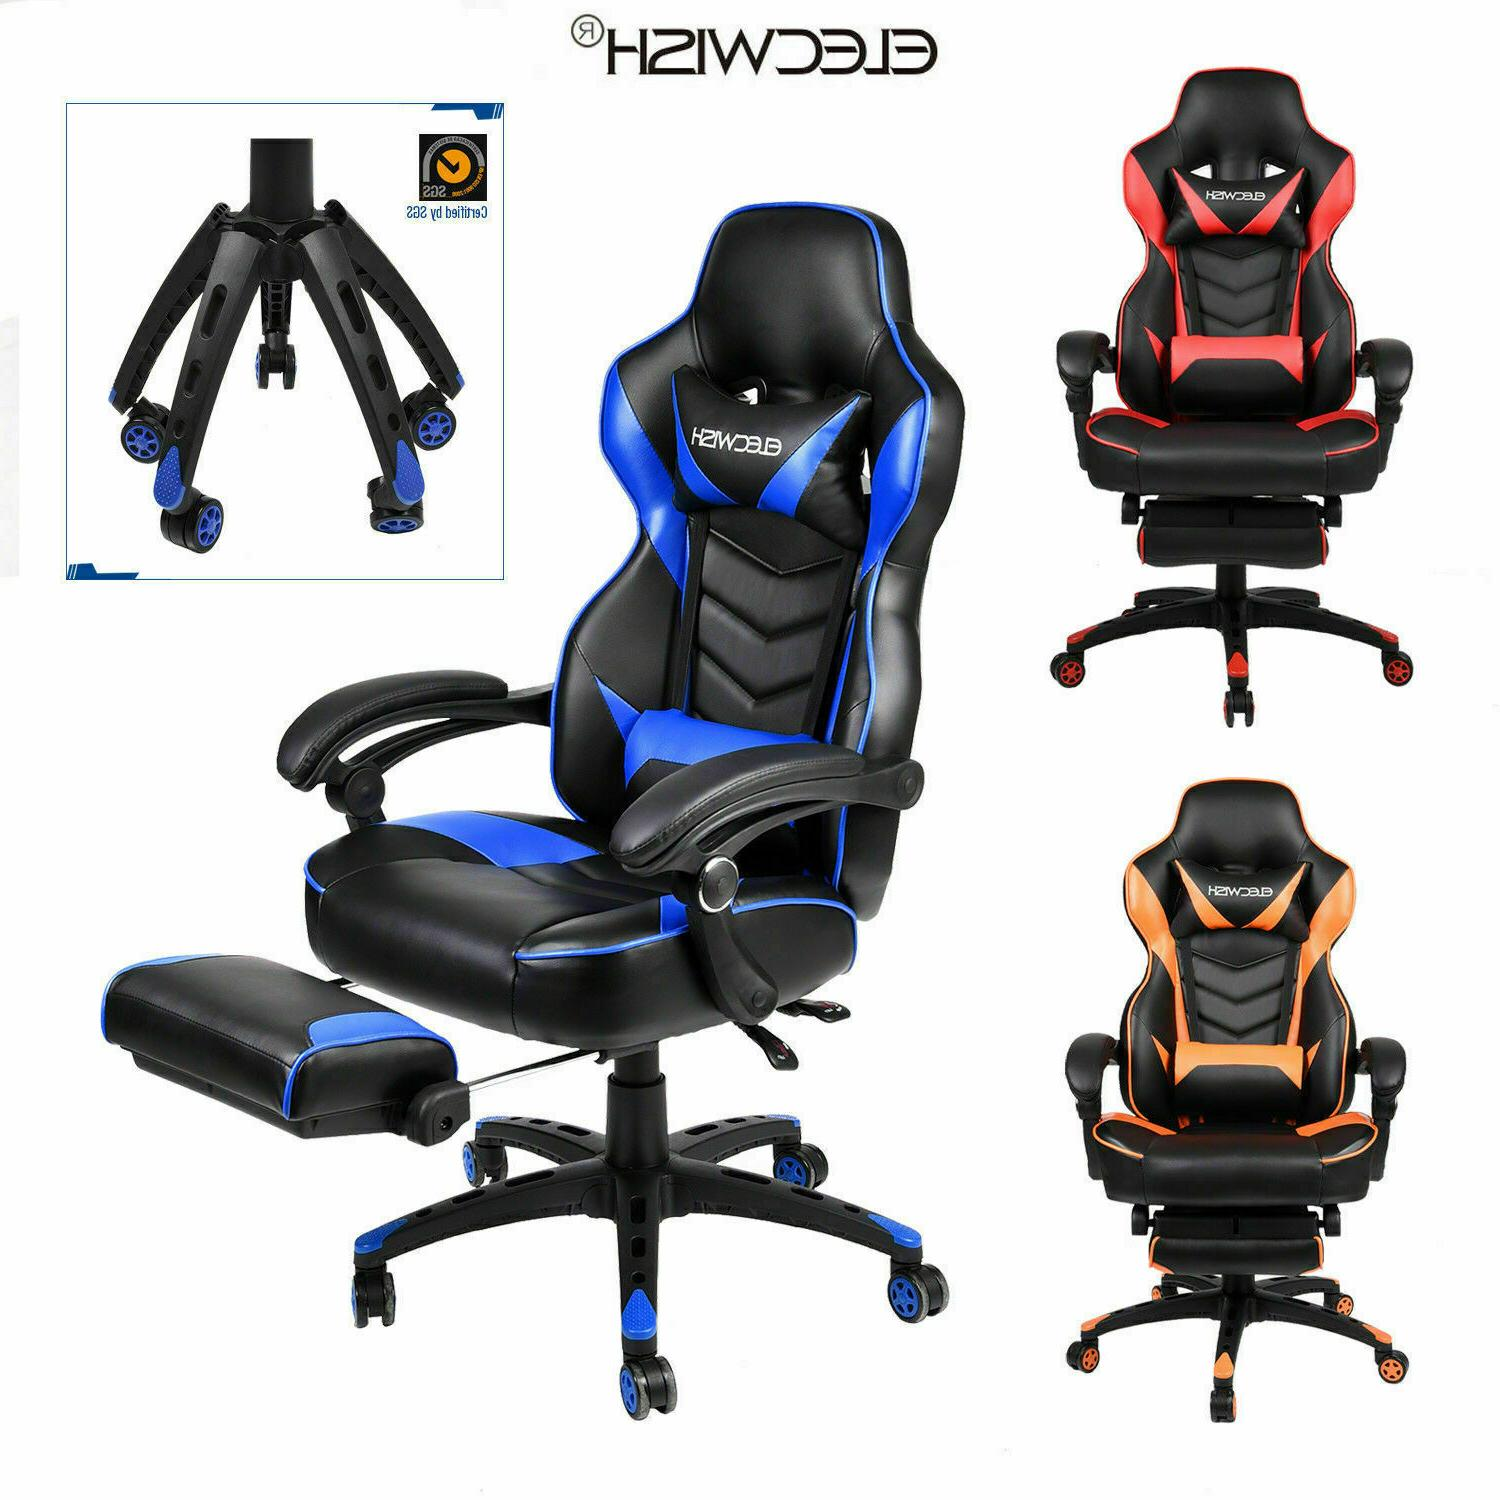 Remarkable Video Racing Gaming Chair Ergonomic Pu Leather Office Machost Co Dining Chair Design Ideas Machostcouk